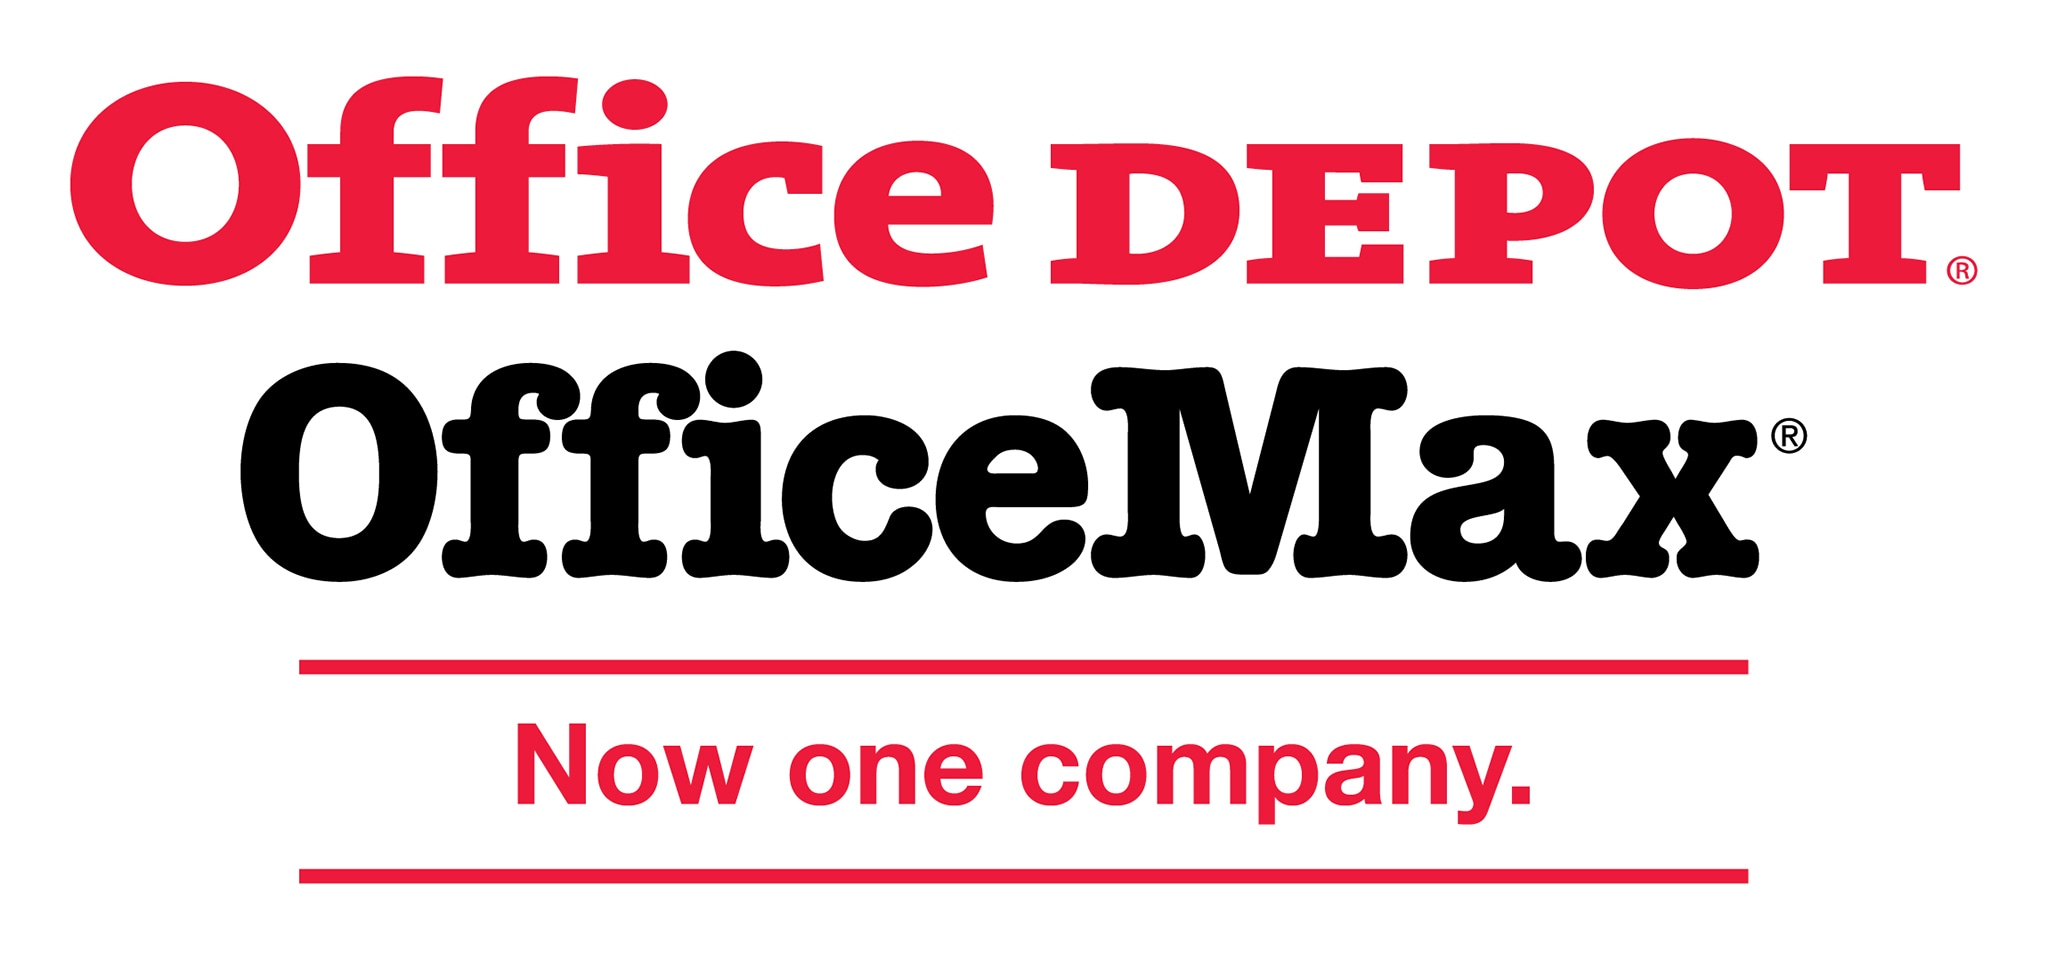 Shop officedepot.com